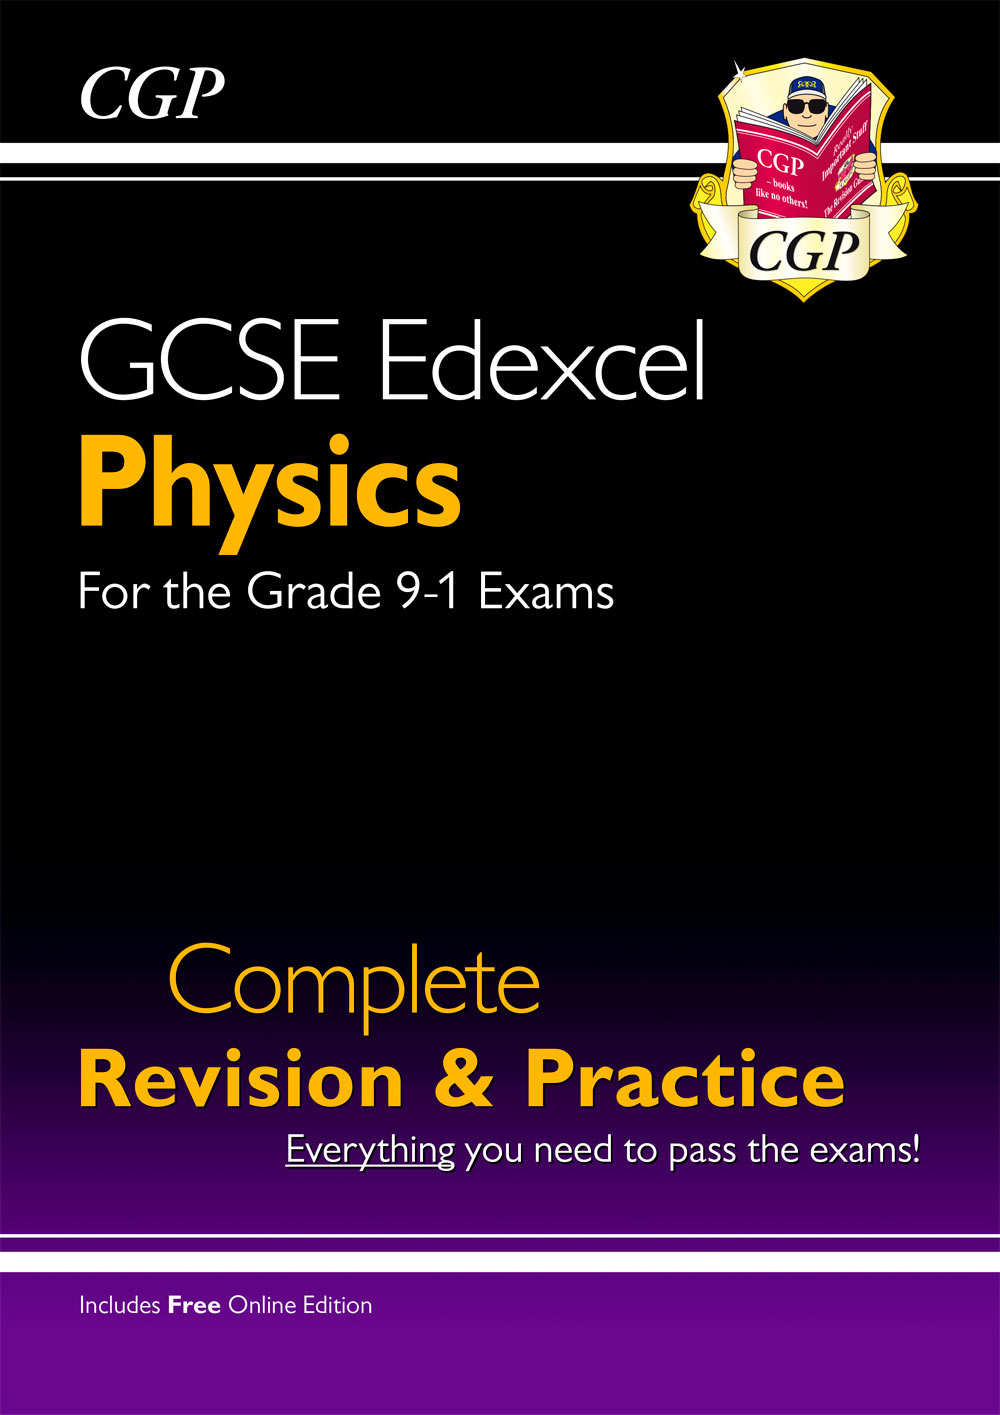 PES41 - Grade 9-1 GCSE Physics Edexcel Complete Revision & Practice with Online Edition